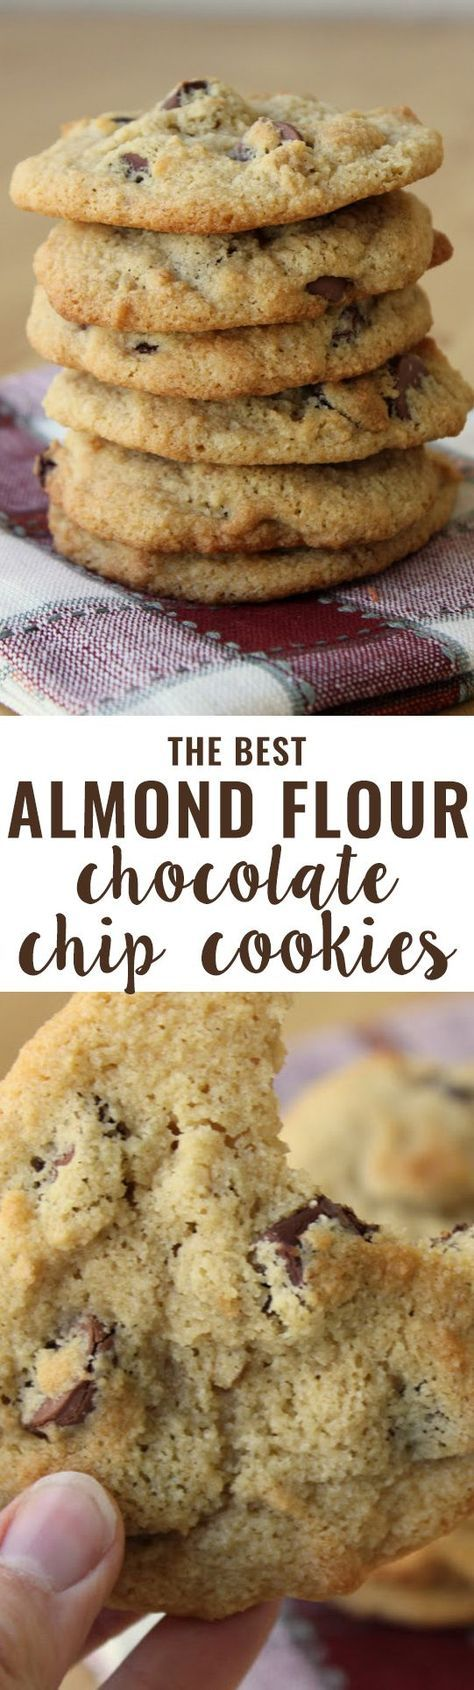 An all-time favourite recipe! Crispy on the outside, soft on the inside and slightly buttery. People tell me all the time they prefer these cookies to their traditional cookie recipes.